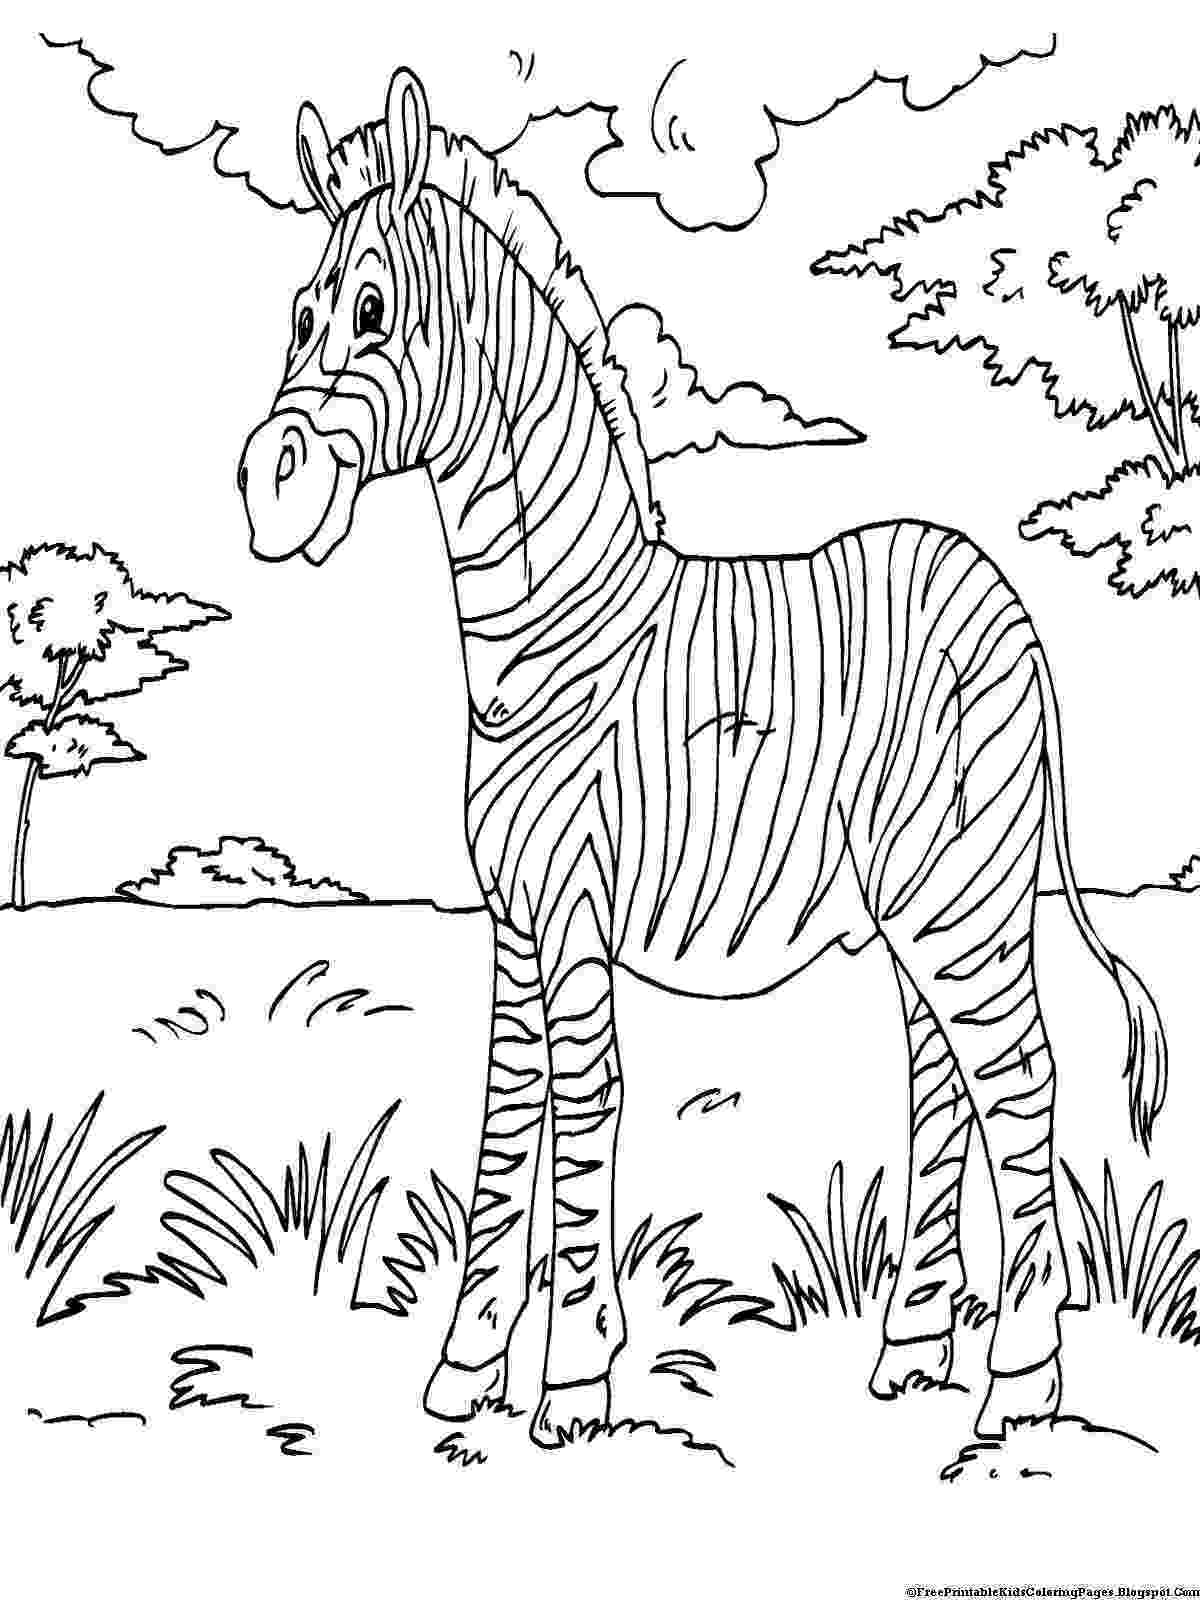 childrens animal colouring books free printable walrus coloring pages for kids books animal childrens colouring